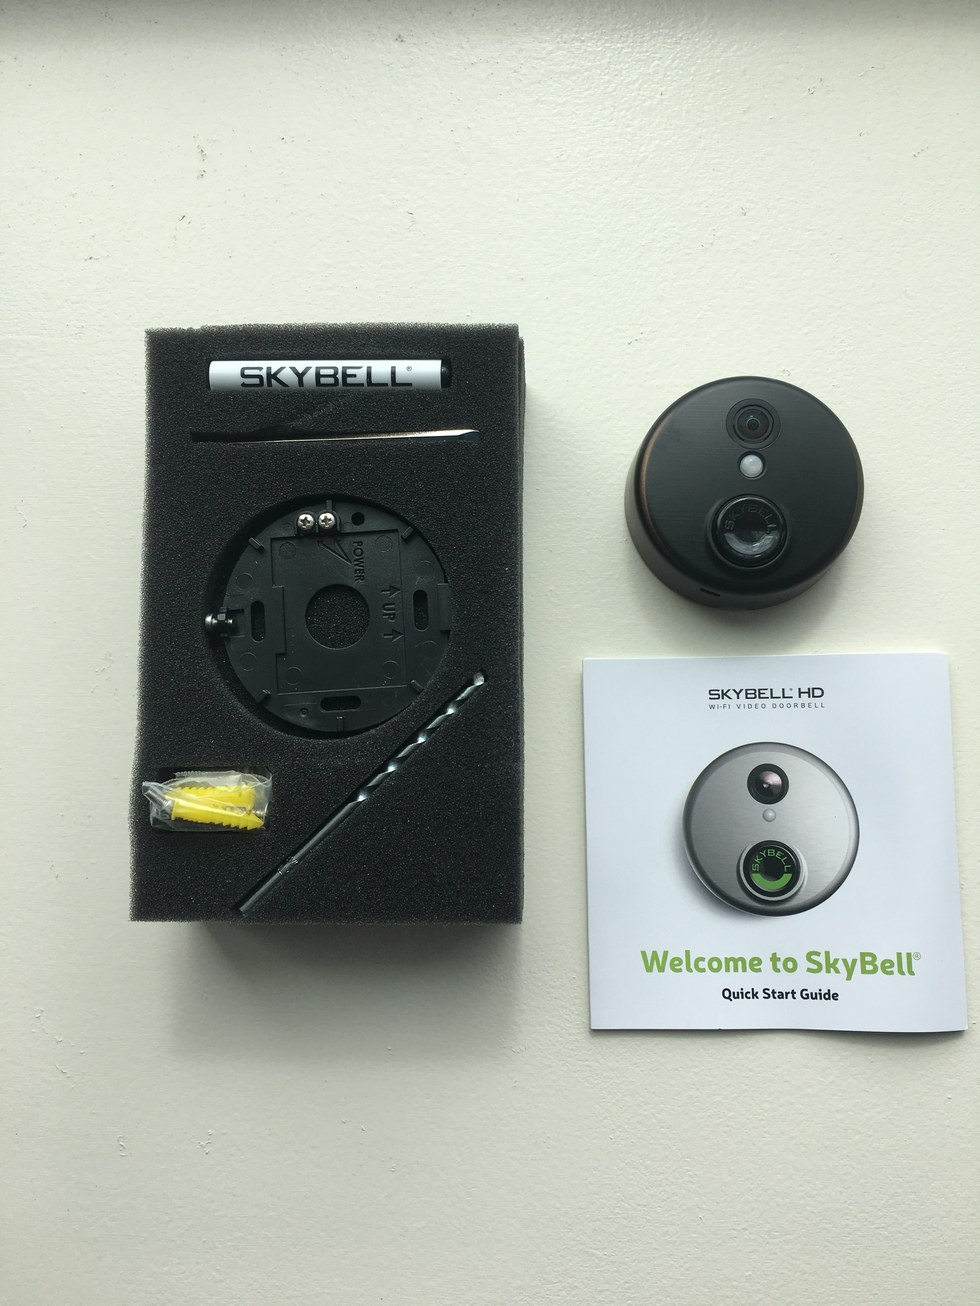 Hook up skybell